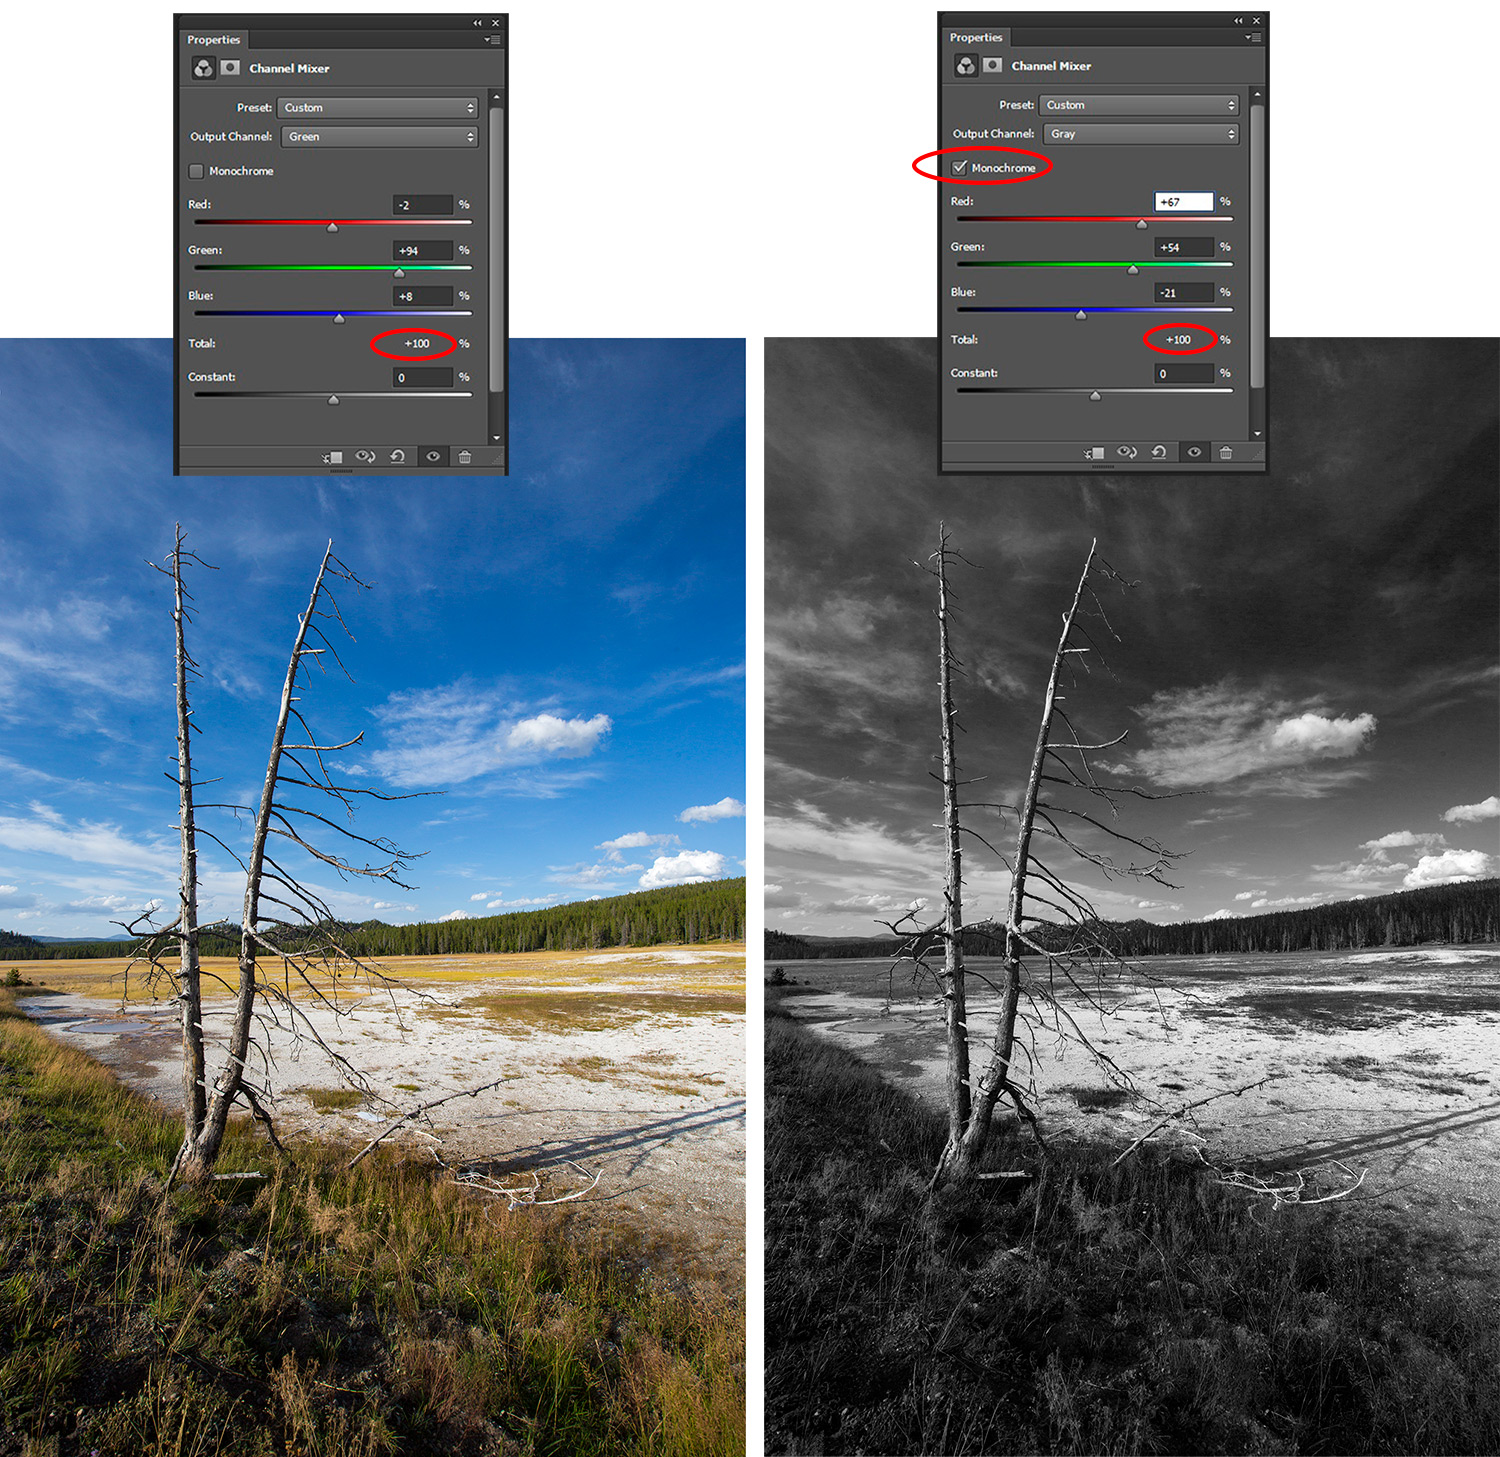 Photoshop Adjustment Layers Explained and How to Use Them (Part 2)